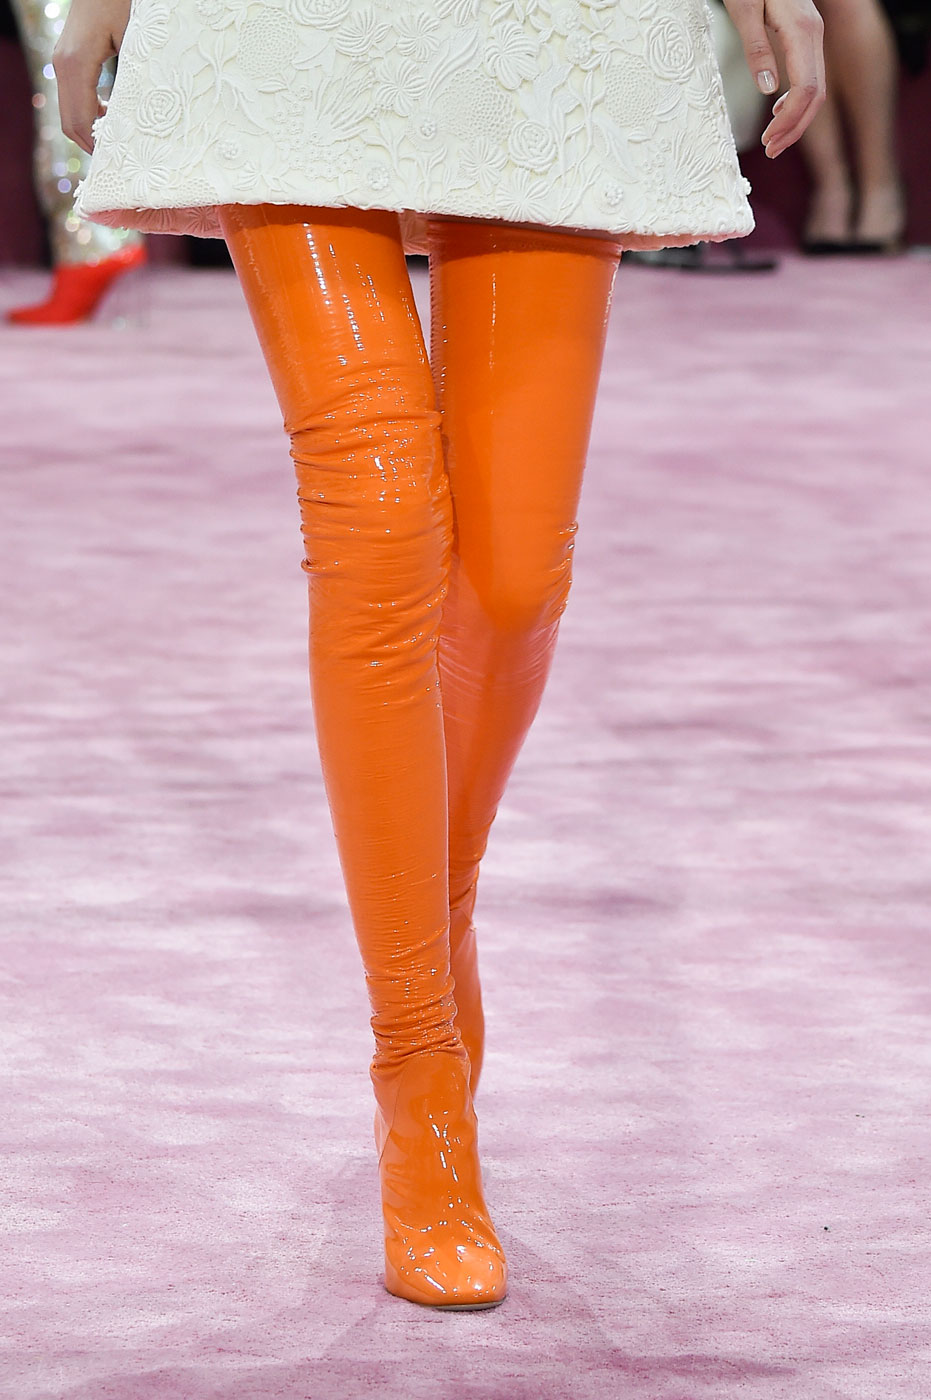 Christian-Dior-fashion-runway-show-close-ups-haute-couture-paris-spring-summer-2015-the-impression-090